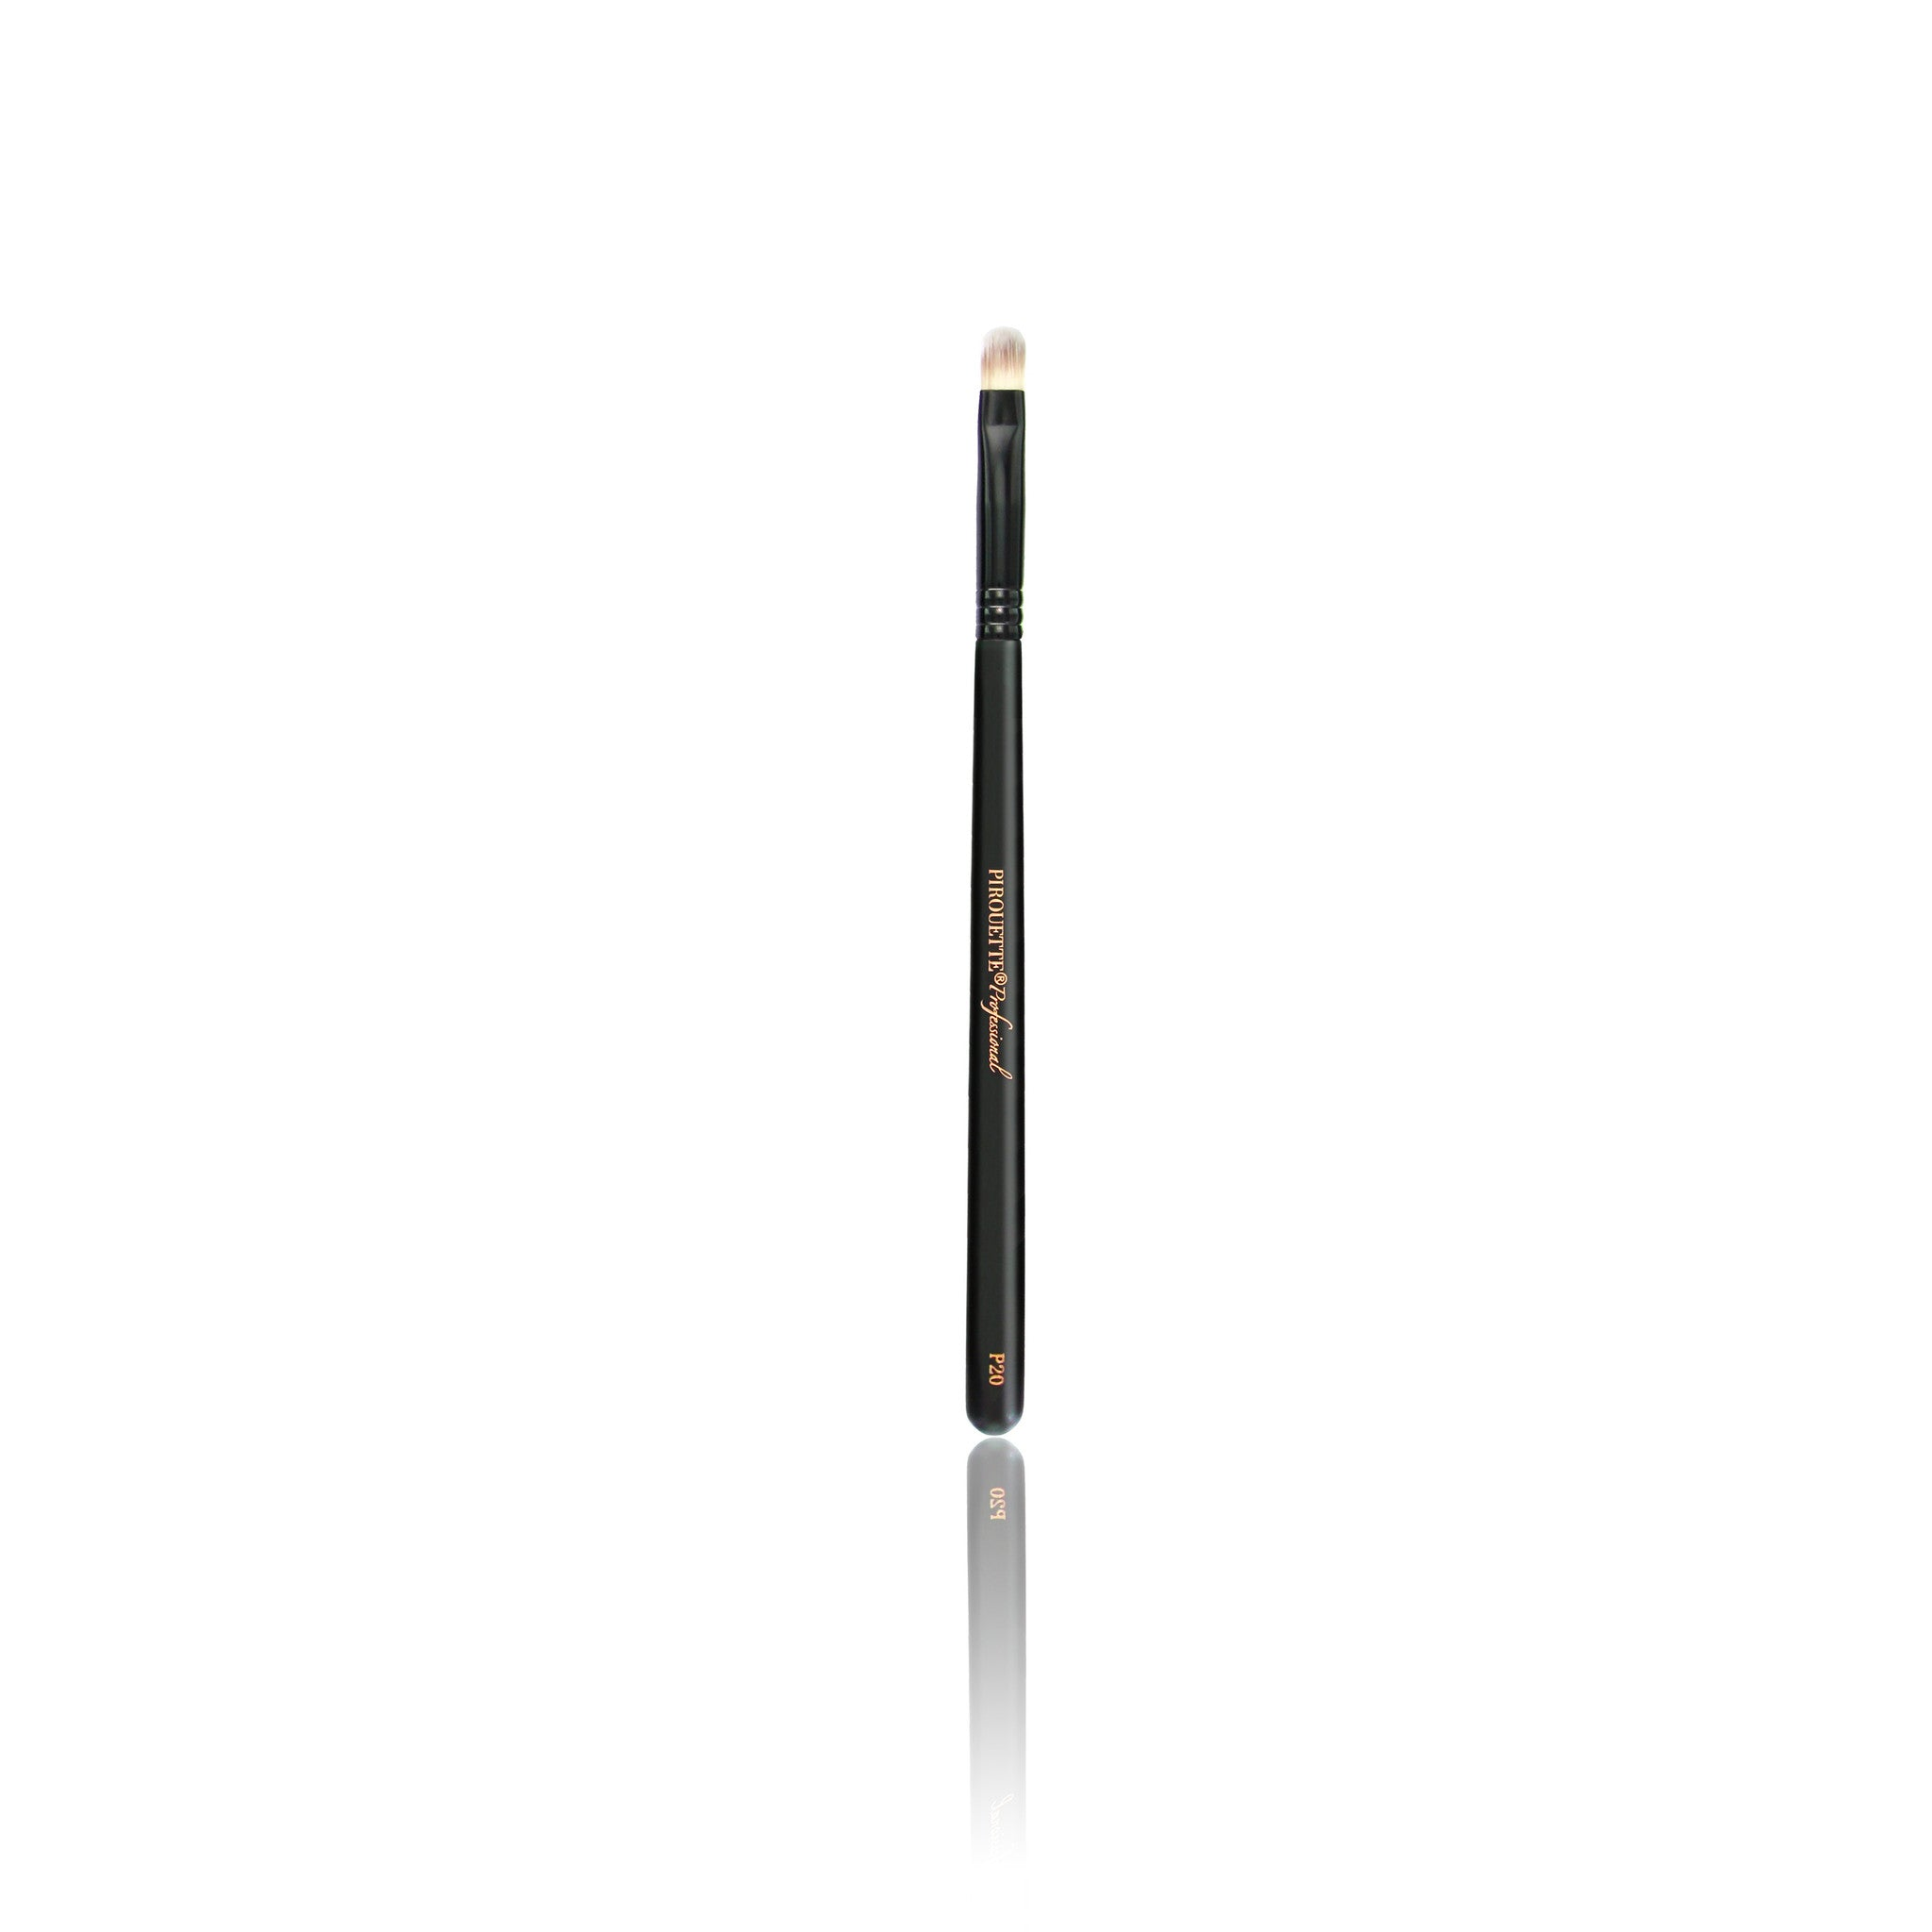 Artiste Collection: Concealer Brush P20